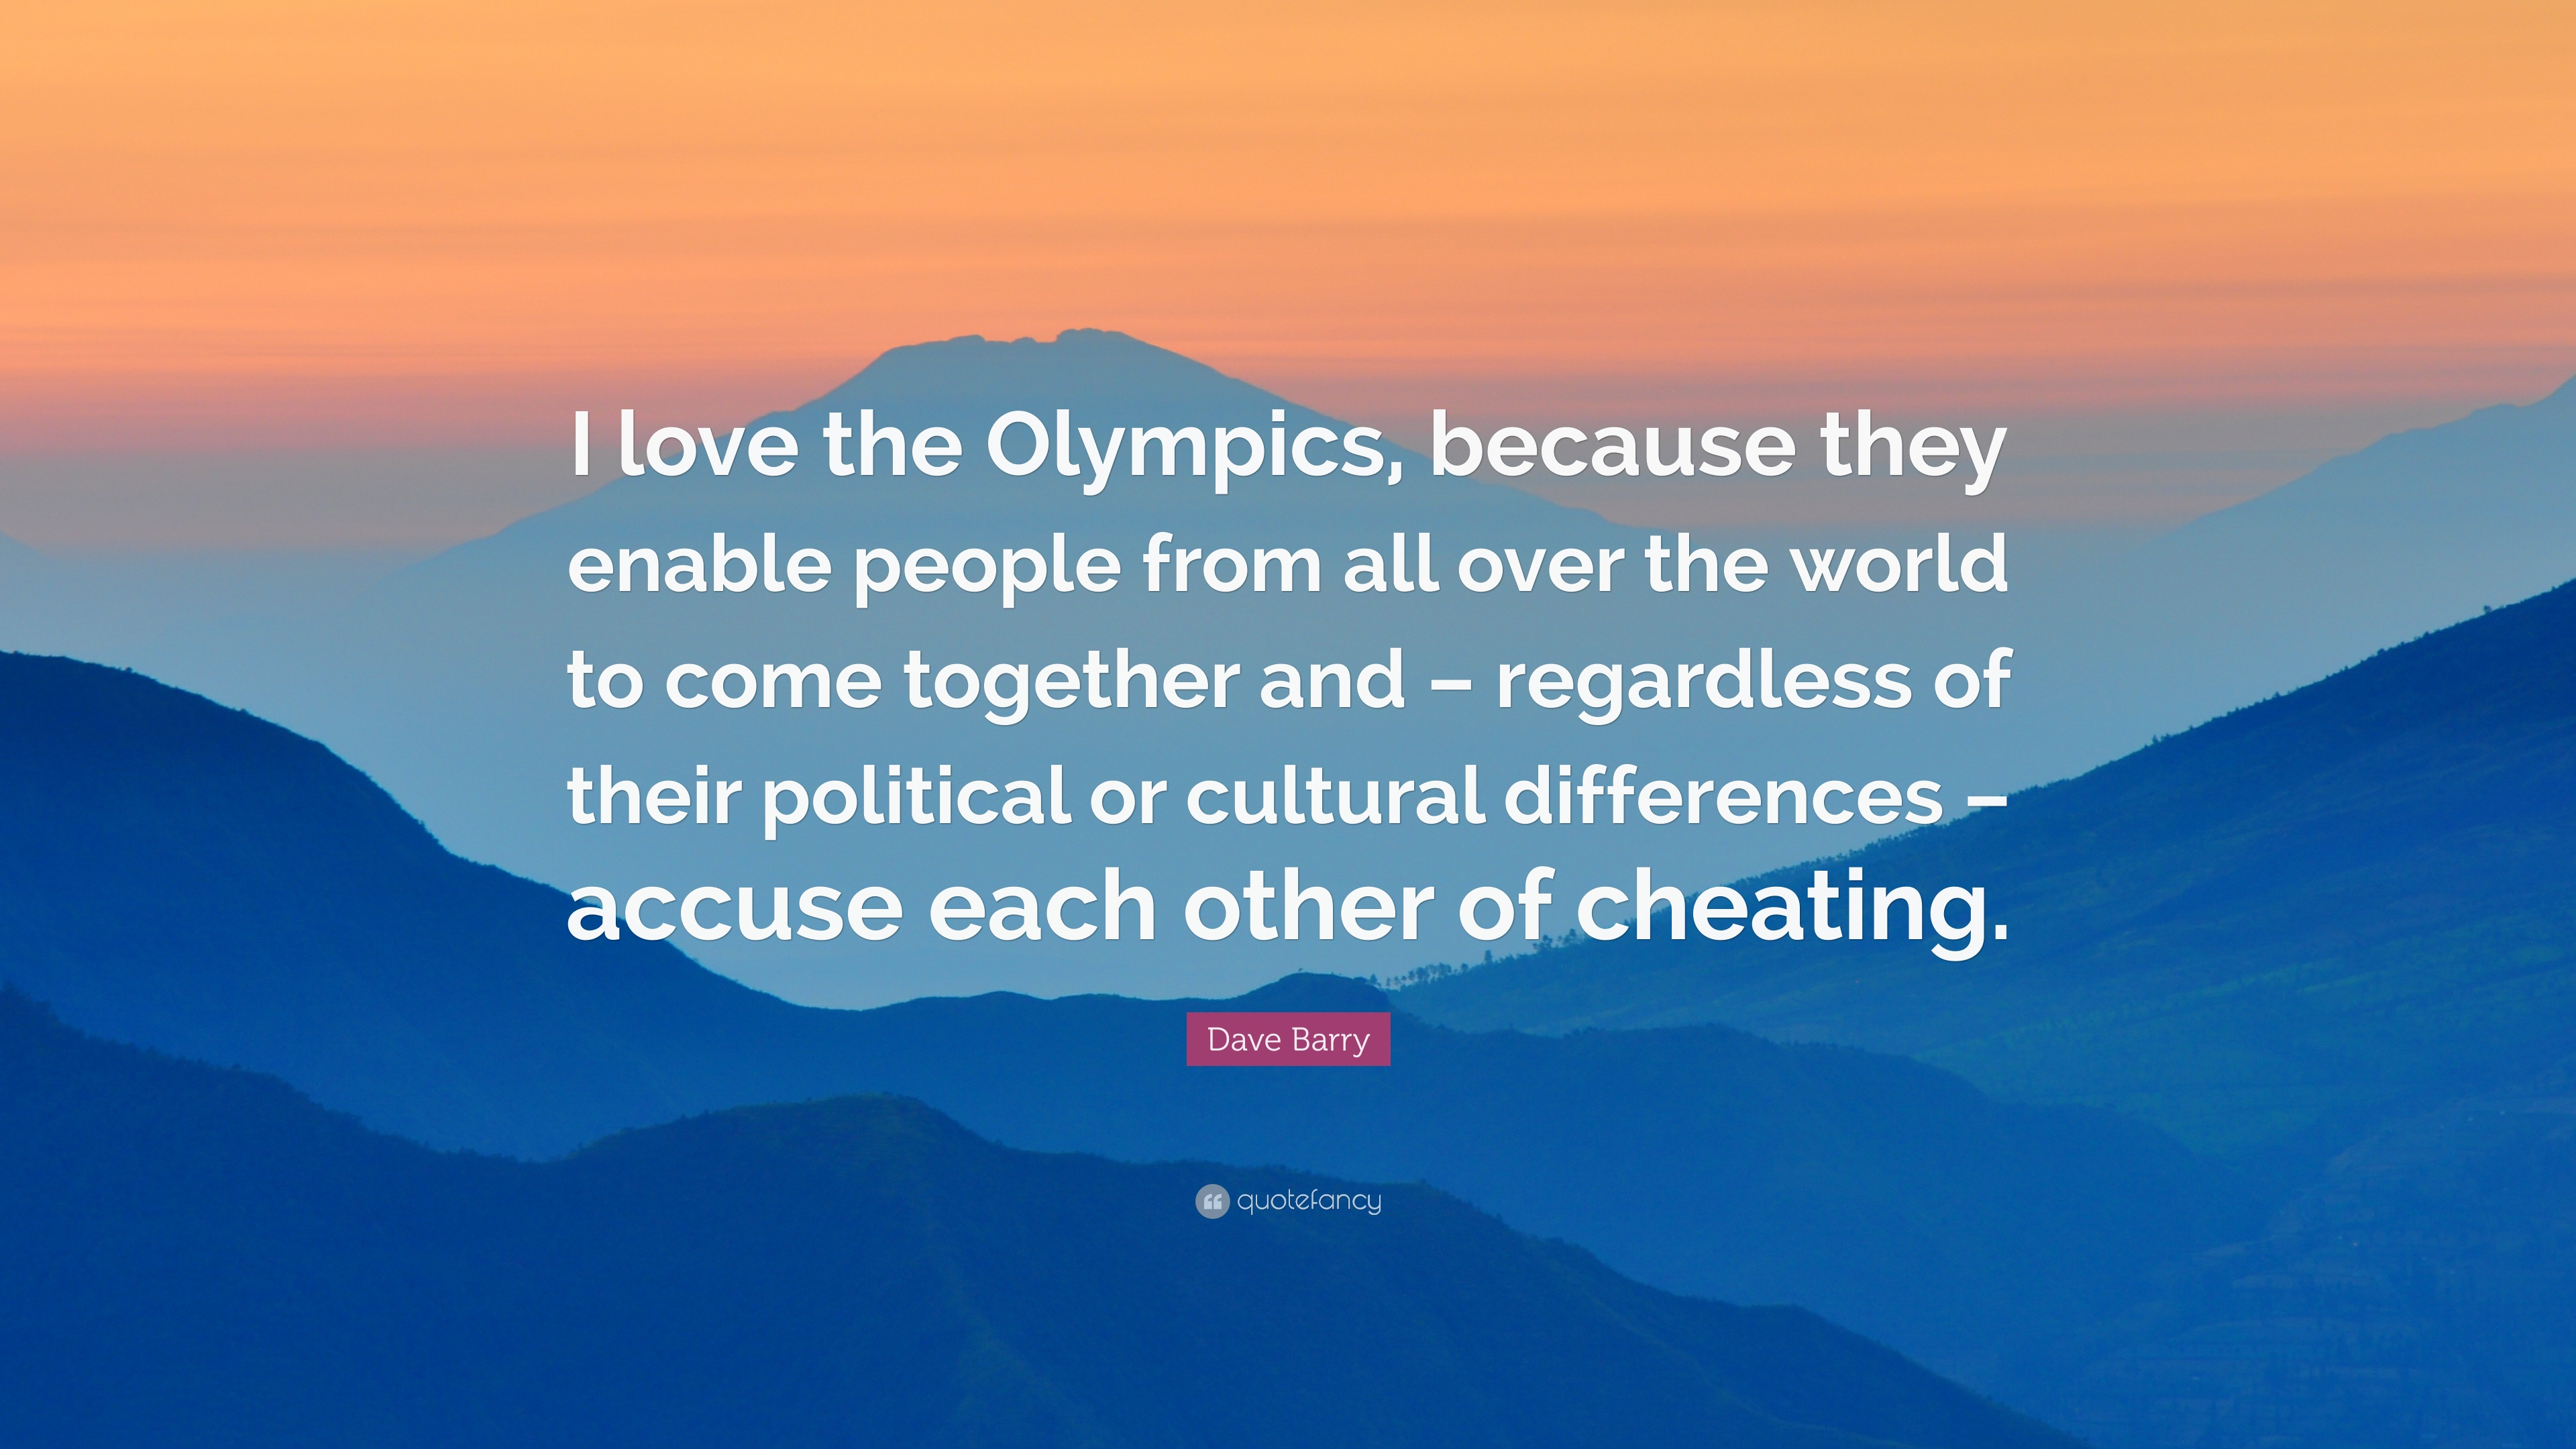 accusing of cheating quotes